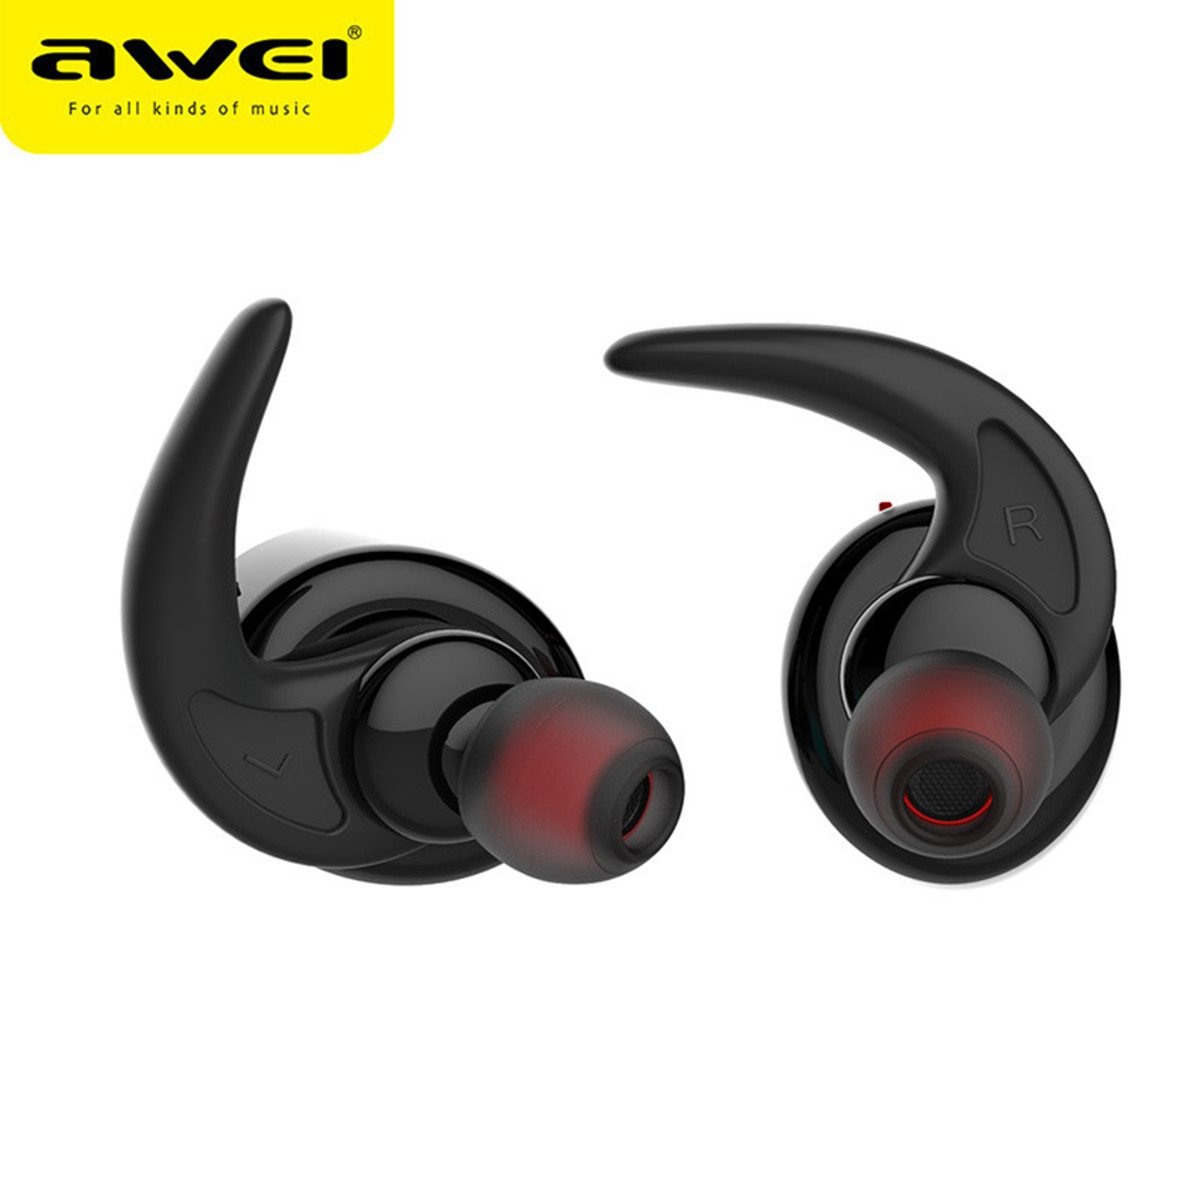 Awei T1 Single/Pairs Ture Wireless Get Rid Of Wire Binding earbuds, One Button Operation Bluetooth V4.2 Waterproof IPX4 Sport Headphones for Running Gym Exercise Hands-free Calling for iphone7(Gold) by AWEI (Image #2)